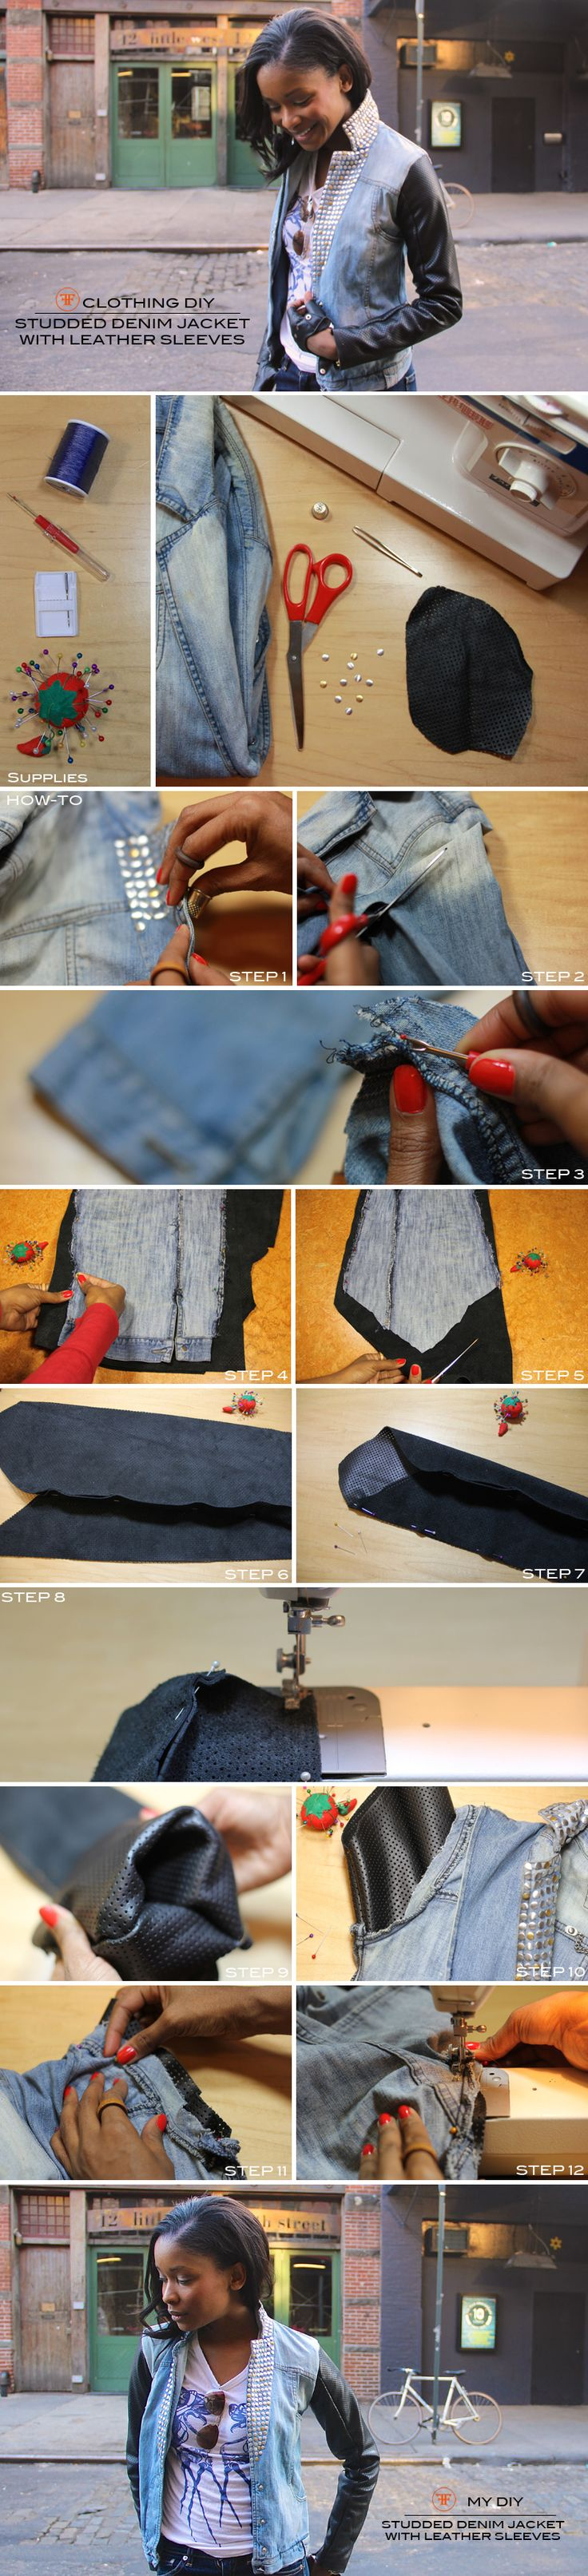 Frugal-nomics DIY :: Studded Denim Jacket with Leather Sleeves. Details at http://frugal-nomics.com/2013/01/diy-studded-denim-jacket-with-leather-sleeves/